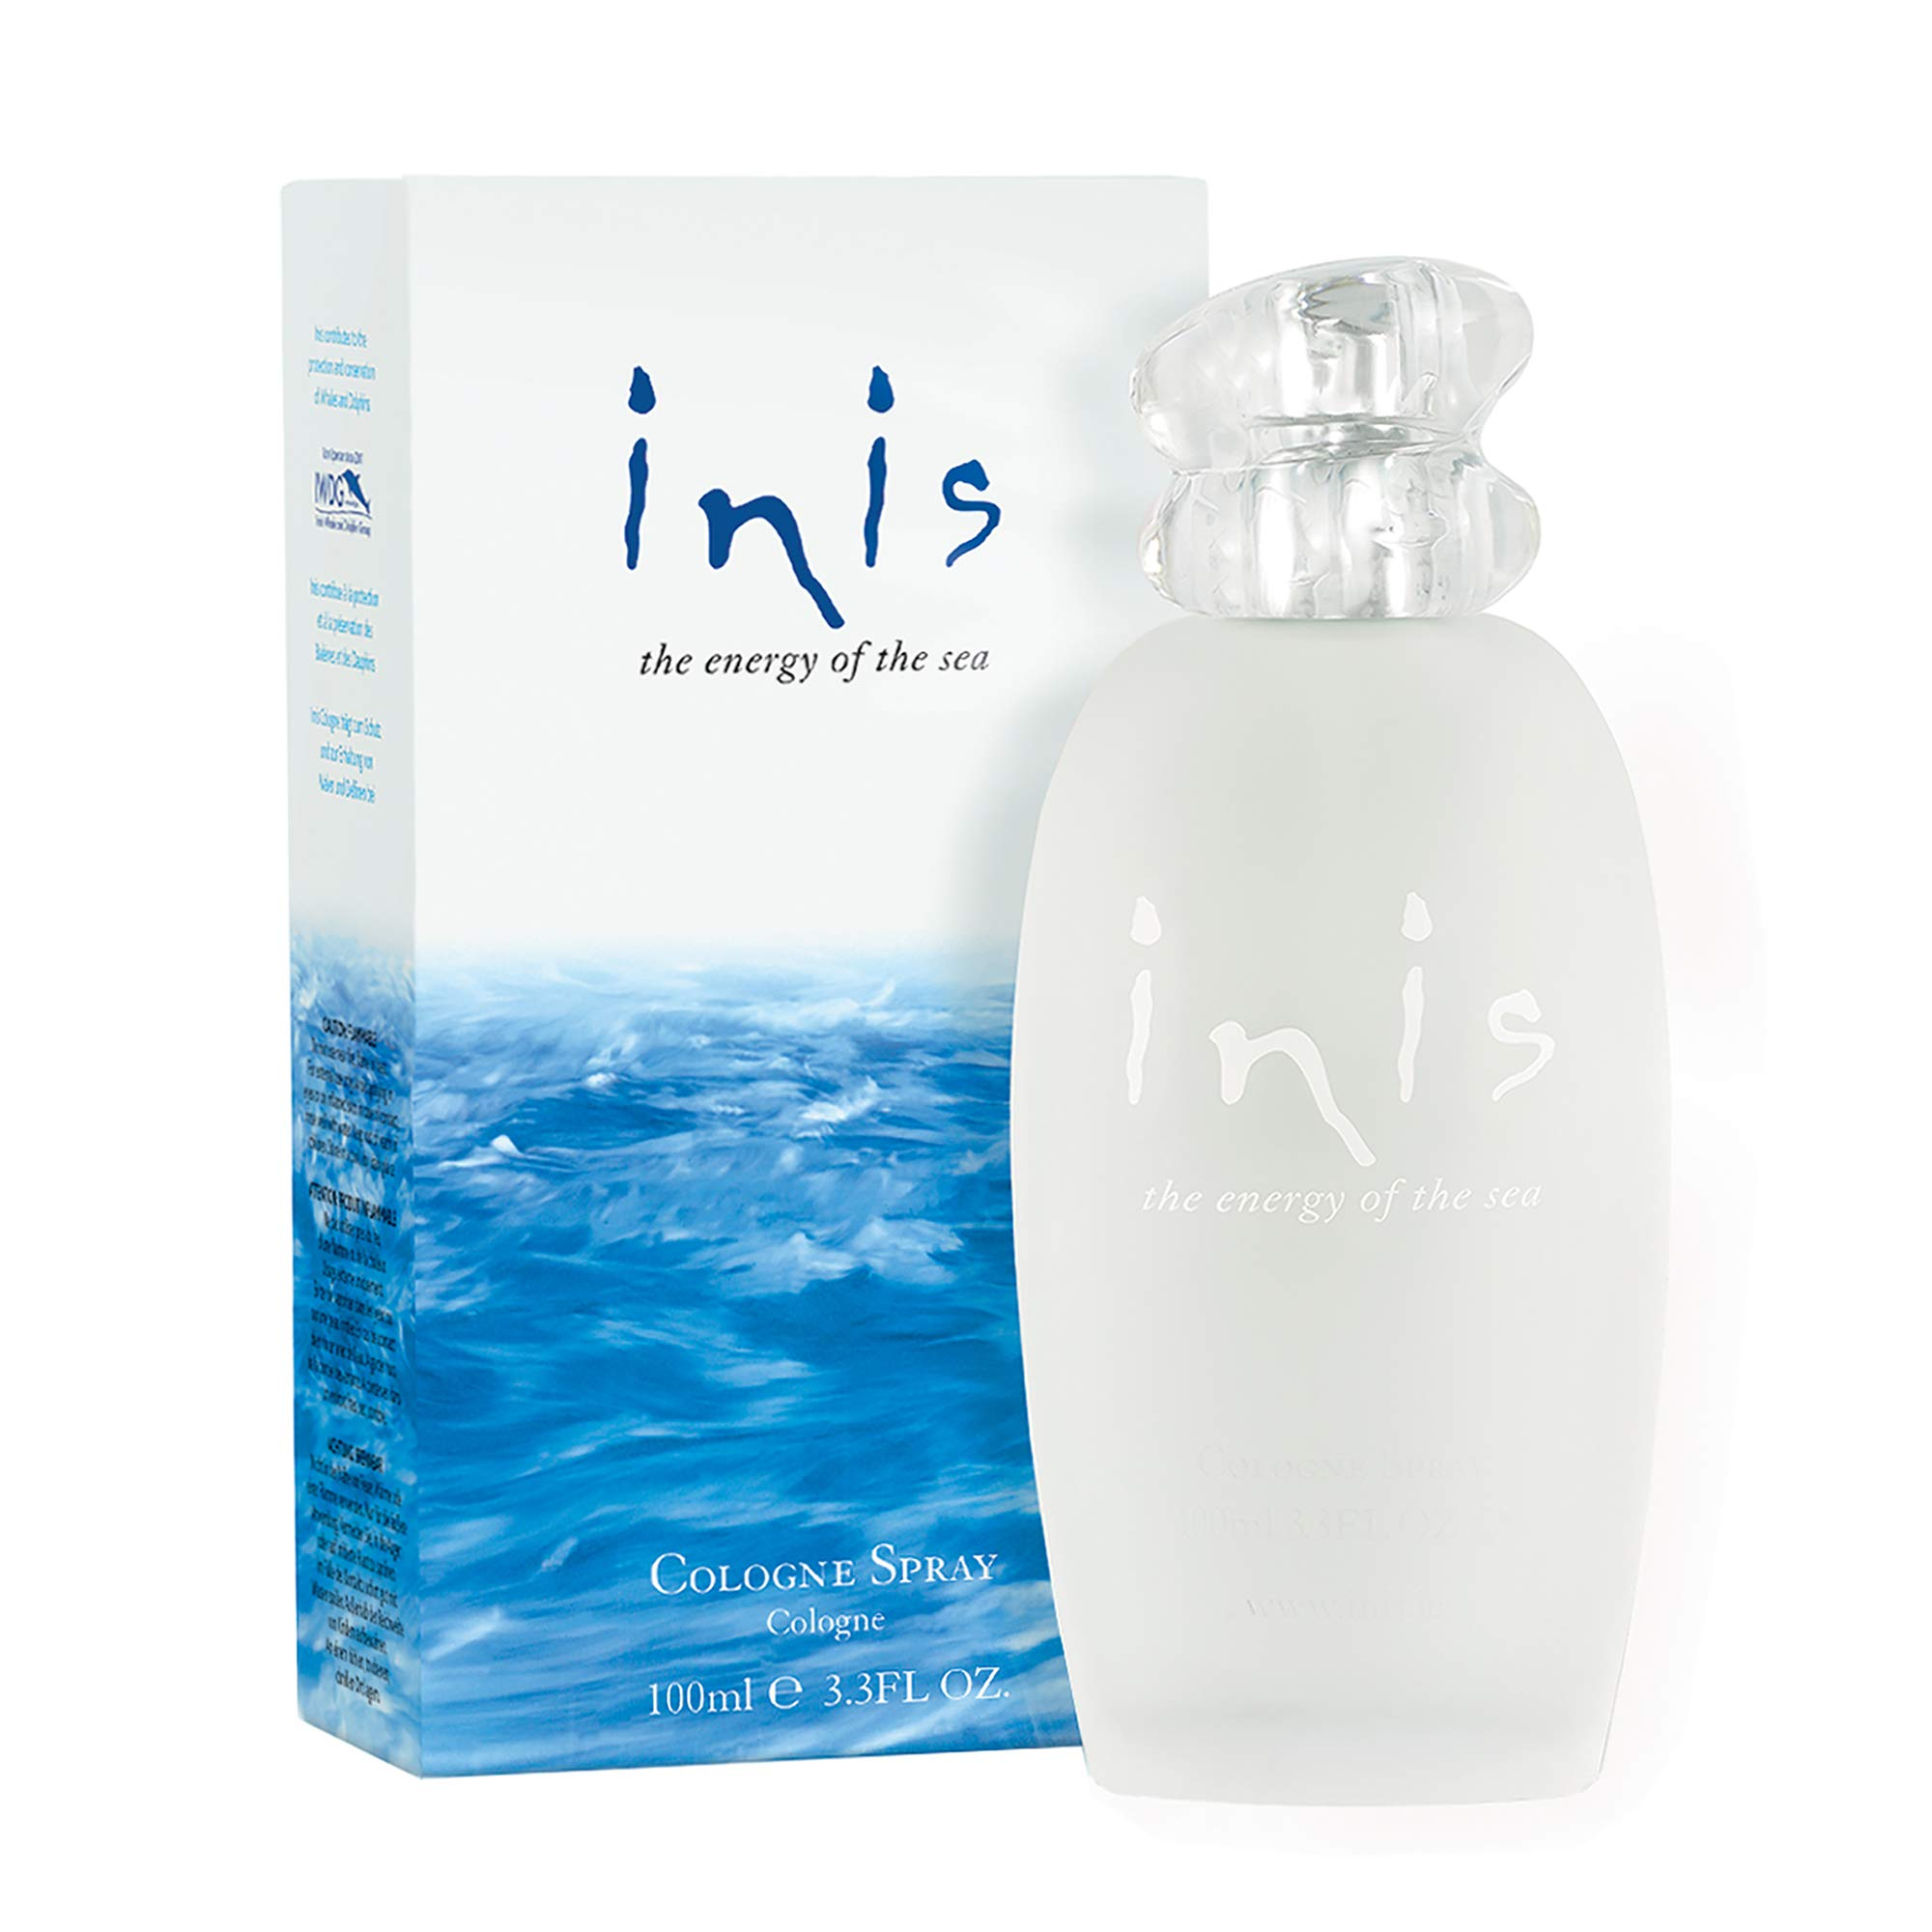 Inis the Energy of the Sea Cologne Spray, 3.3 Fluid Ounce by Inis the Energy of the Sea